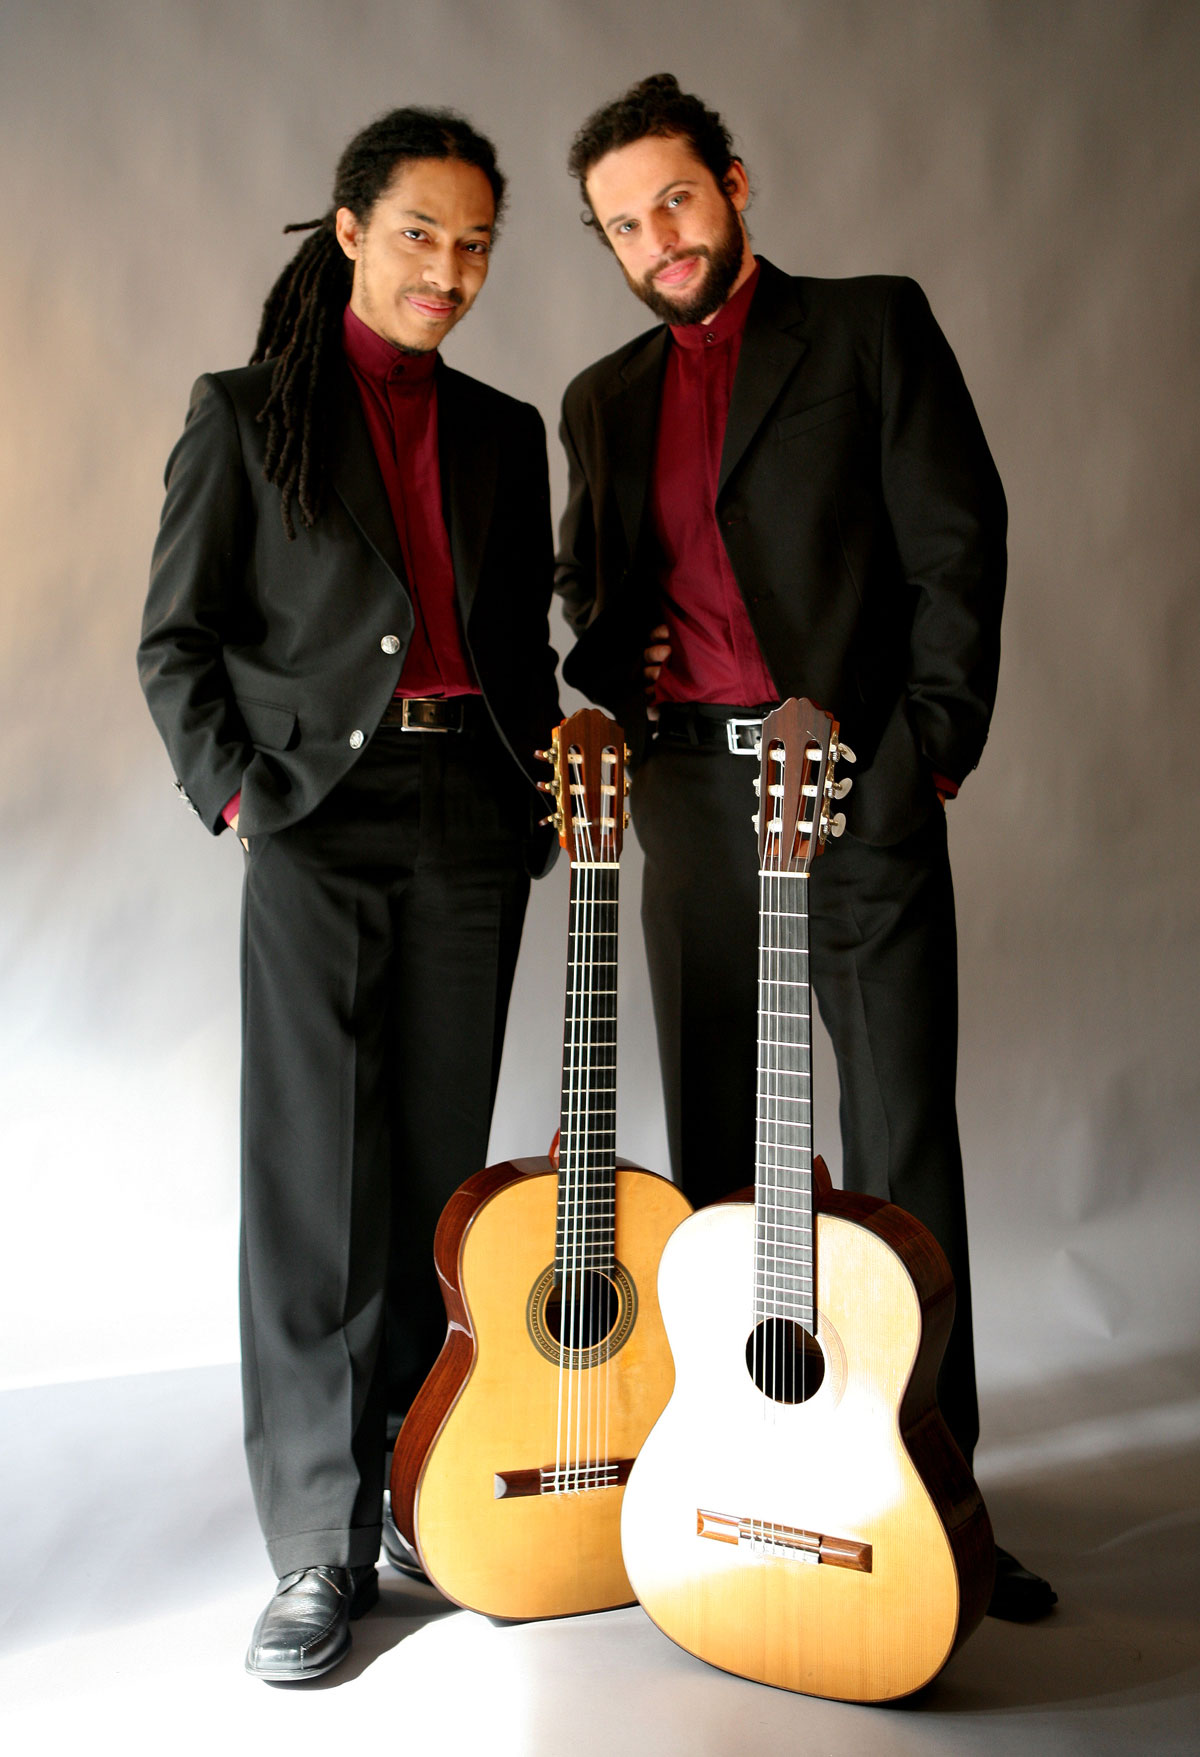 Brasil Guitar Duo Mccain Auditorium Tickets